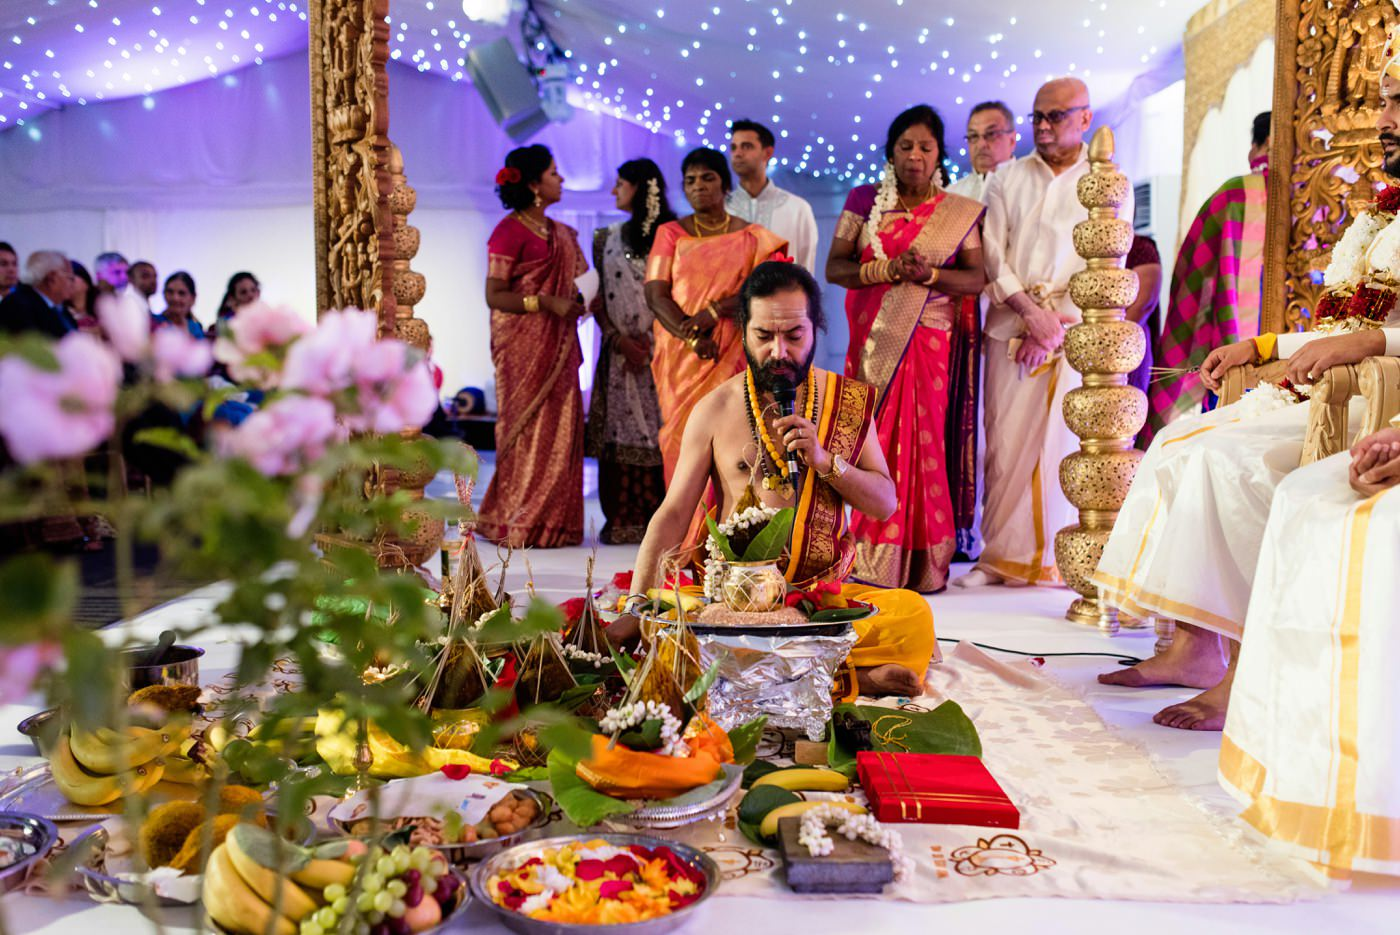 Hindu wedding photography Painshill Park Surrey